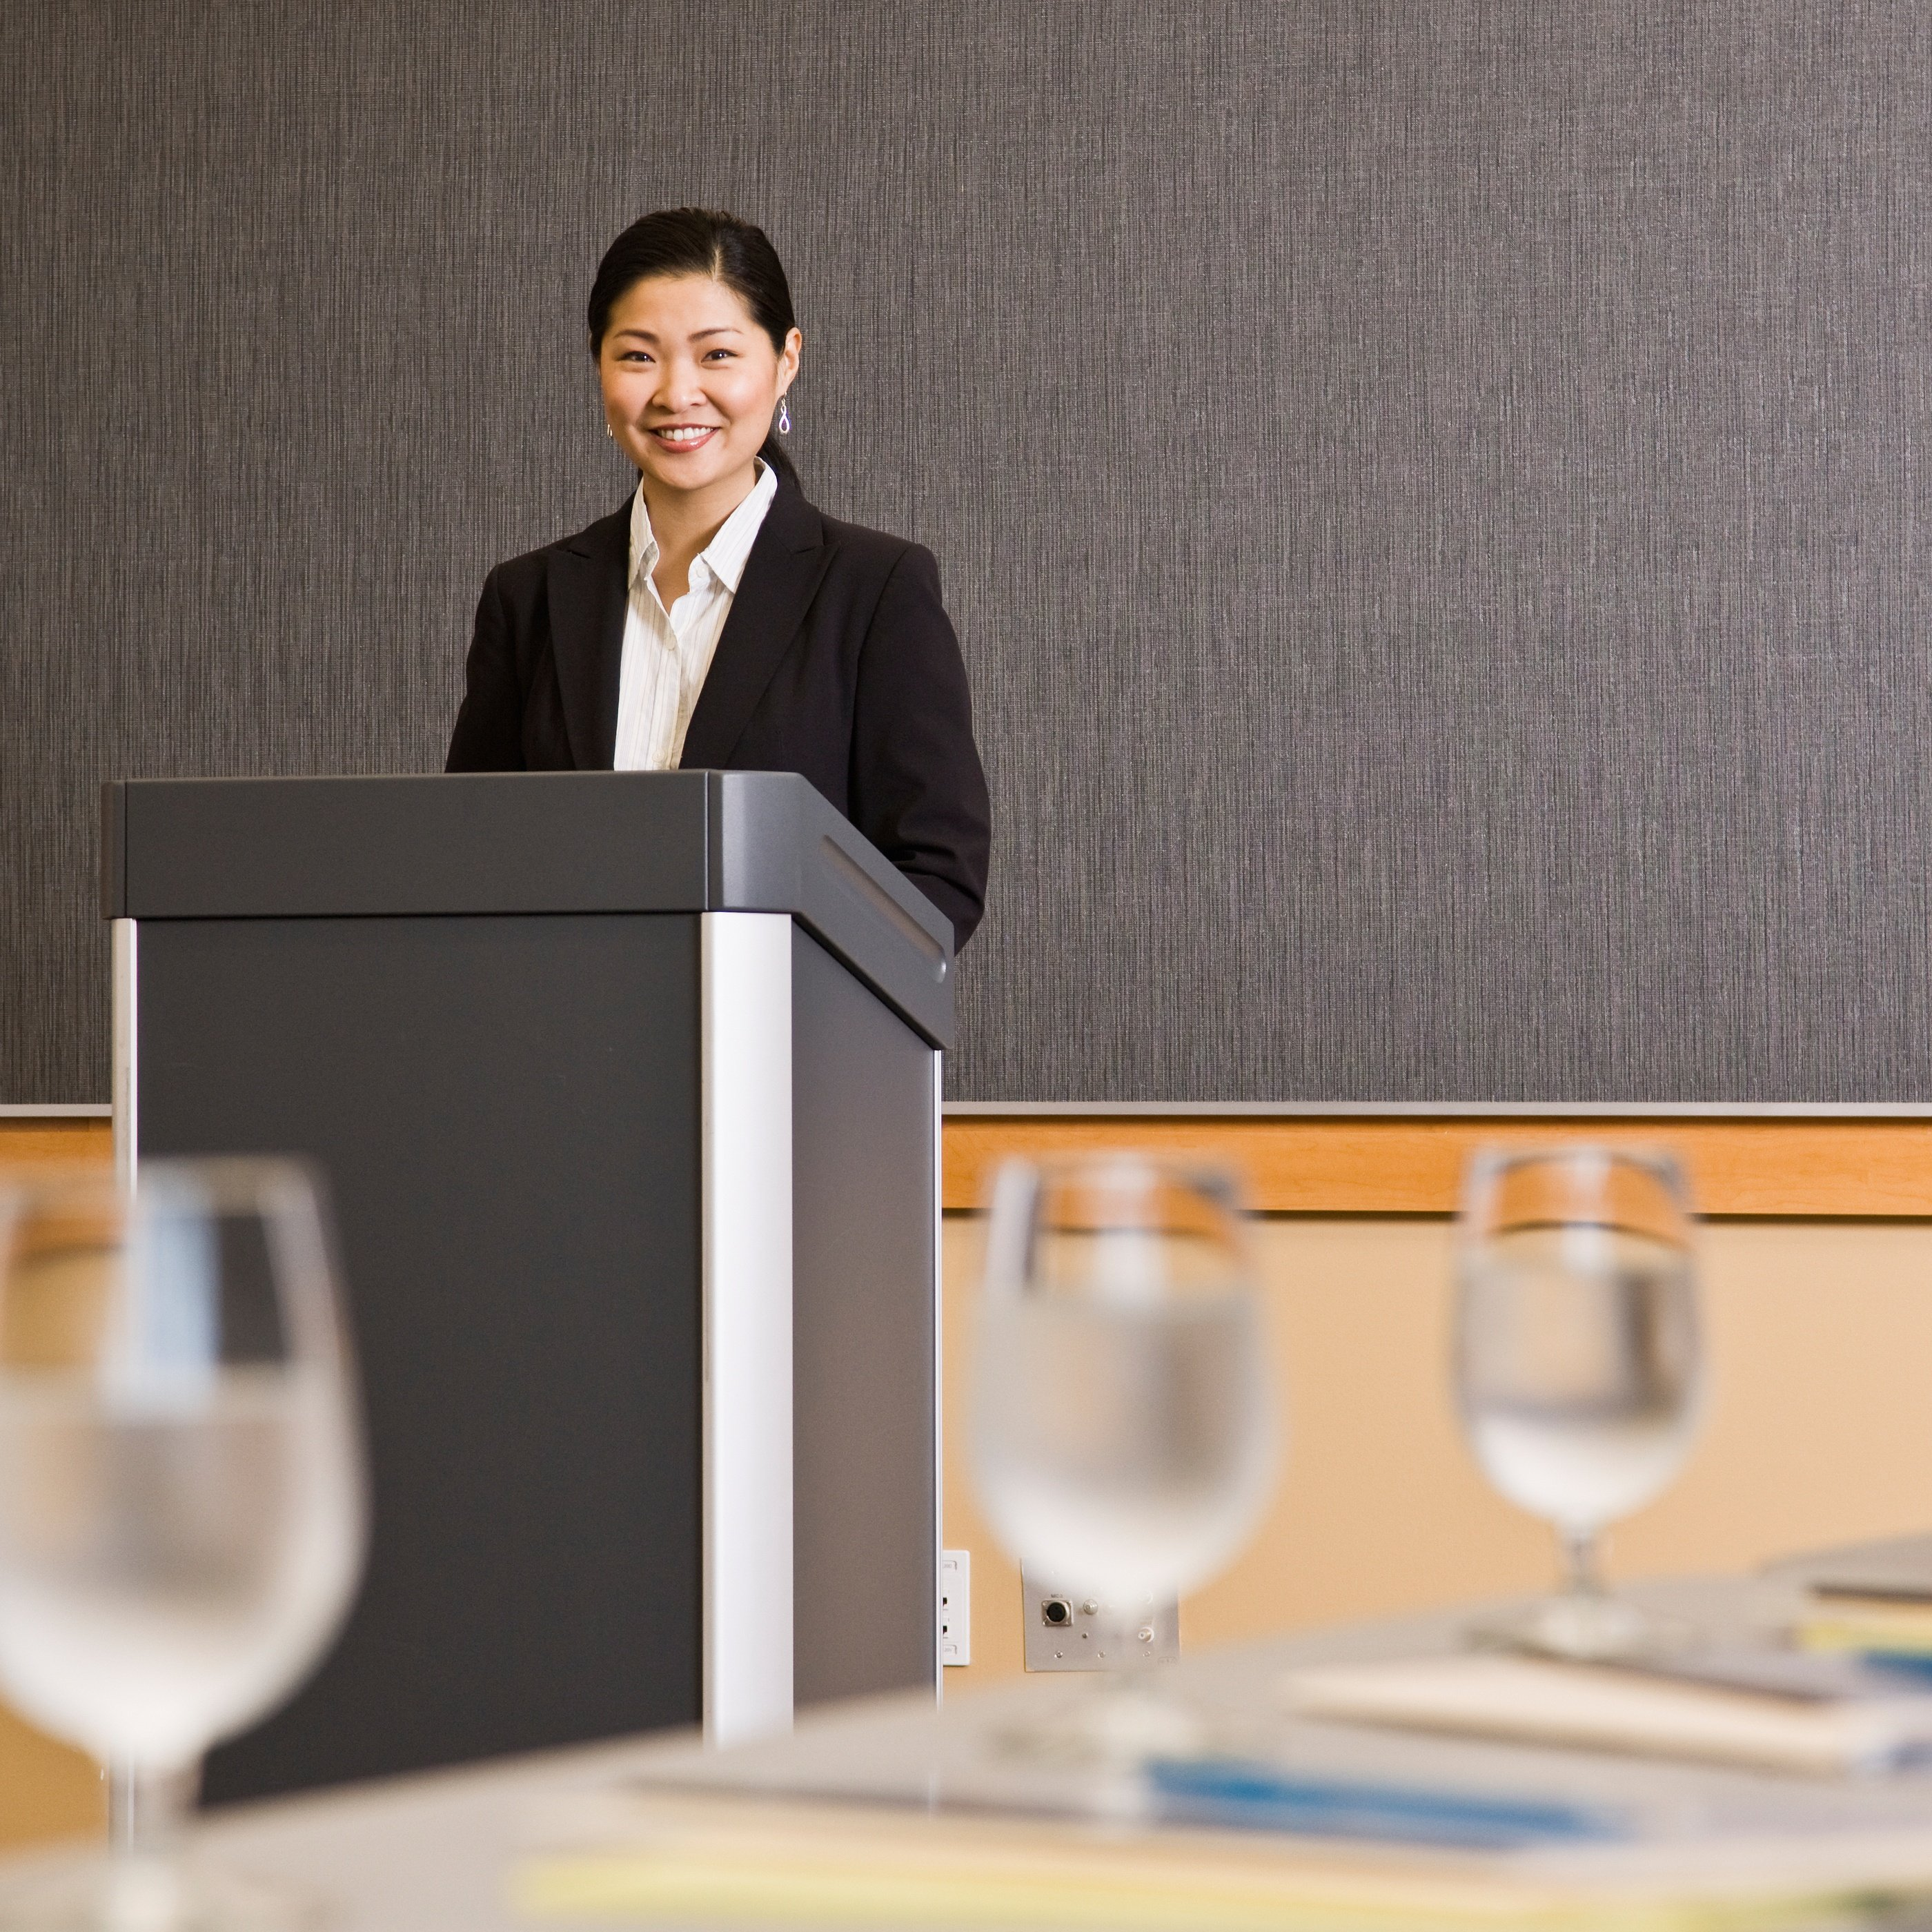 4 Tips for a Successful Presentation